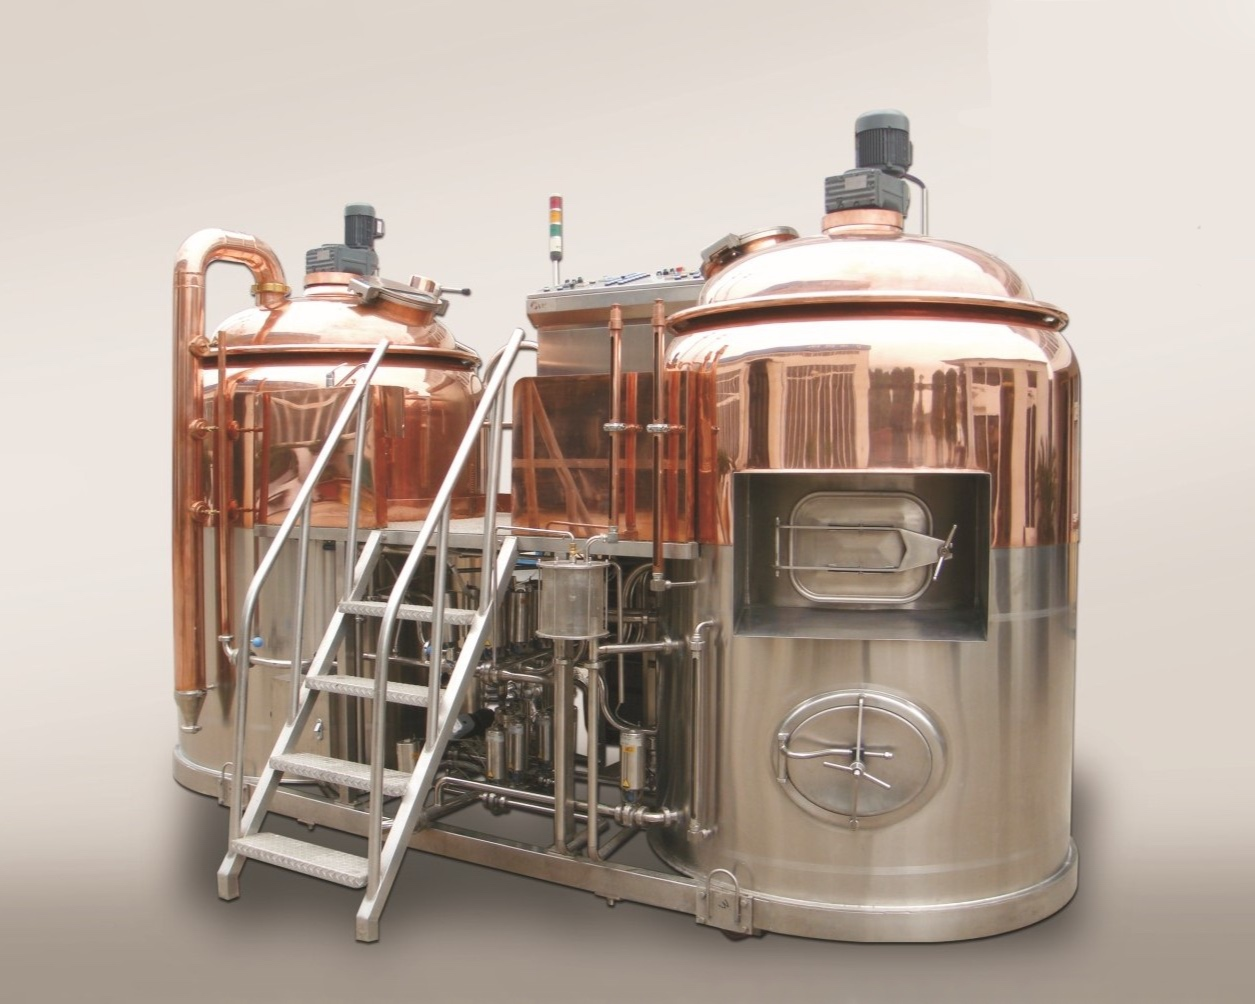 Steam Heated Brewhouse II - Model name: GEXBH-SHB-IIMain equipment:- Combi-tank- Kettle whirlpool tunDetails:- Combi-tank: The bottom of mash lauter tun is the top of hot LT- Kettle whirlpool tun: Bottom and shell jackets- Platform- Grist hydrator / Piping / Pump (Frequency control) / Single stage heat exchanger / Wort aeration device / Control box- Temperature controller- Manual valvesOptional:- Steam condensing pipe / Liquor blending system / Racking machine (Frequency control / Shell jacket for mash lauter tun / Mash mixer for mash kettle whirlpool tun (Frequency control / Pneumatic valves & button control / Spindle stationSizes:- 5BBL / 10BBL / 15BBL / 20BBL or completely custom built